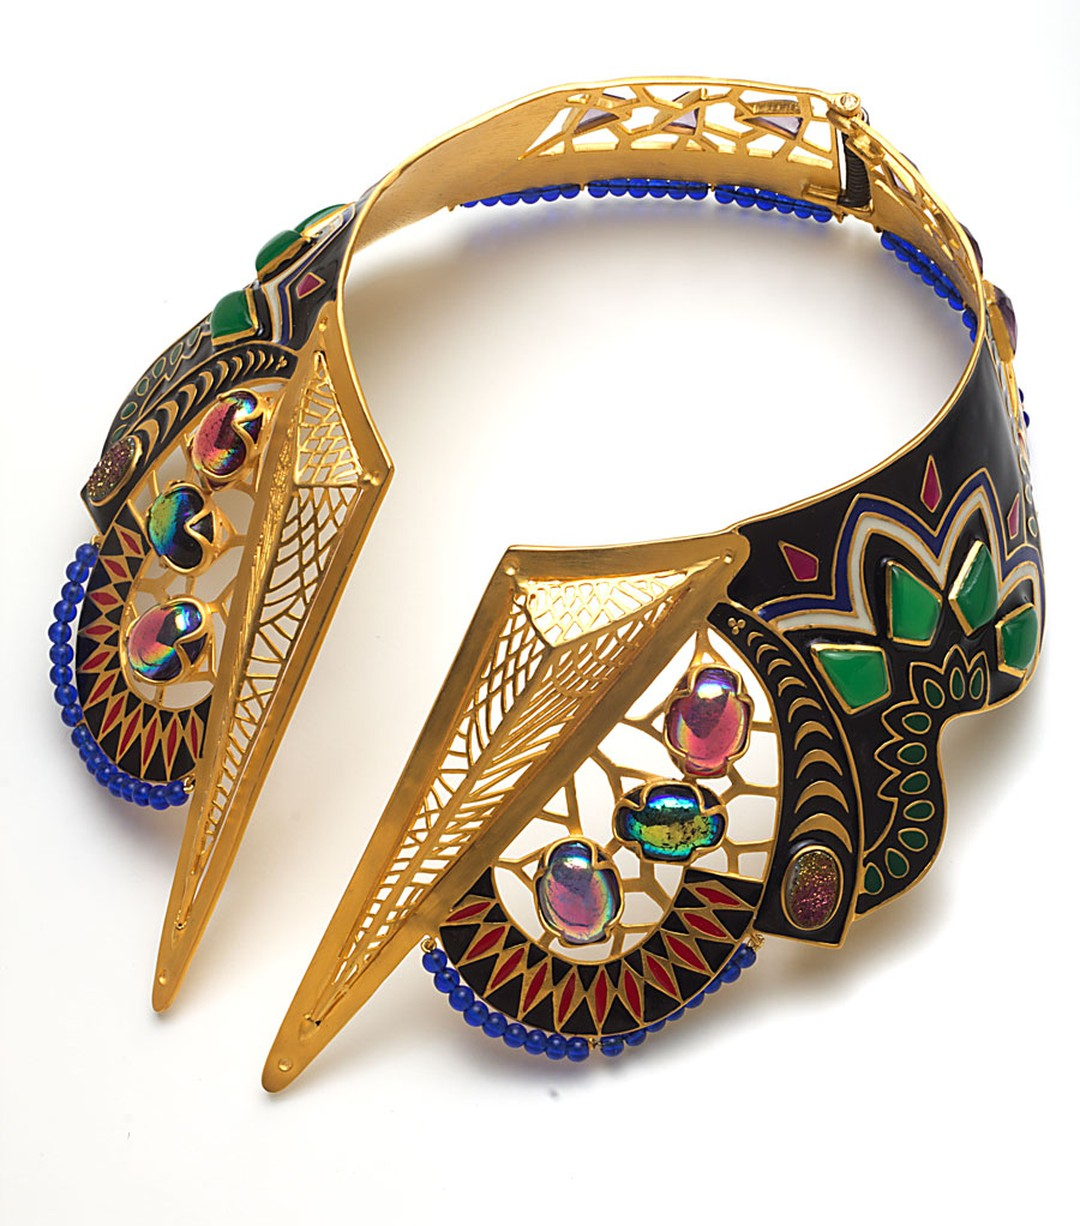 Amrapali-20-A_MA-Product-Shot-jewelled-necklace.jpg